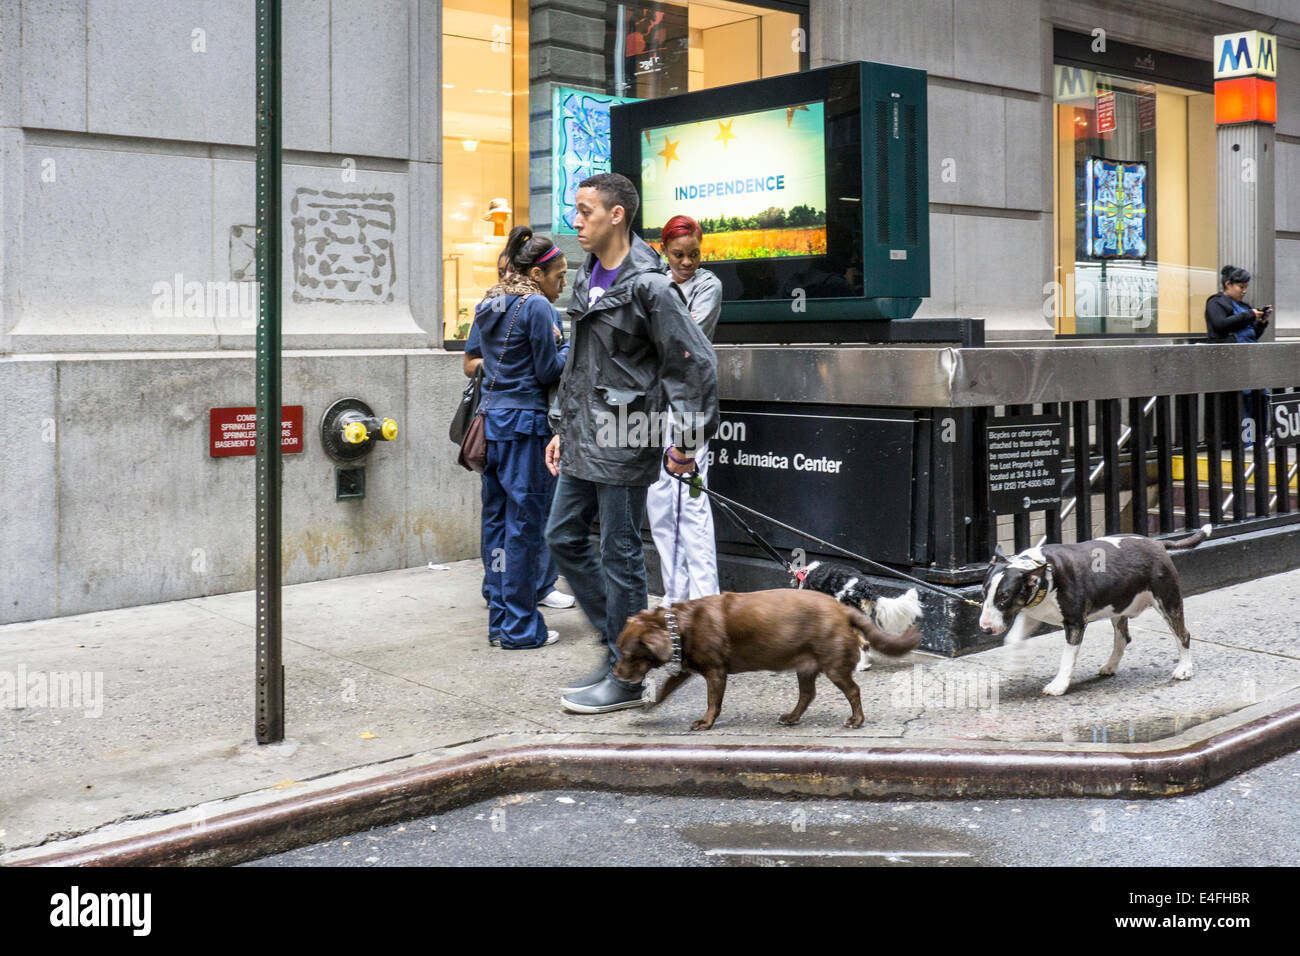 stoic professional dog walker leads 3 pricey dogs around subway entrance at corner Exchange Place & Broad street - Stock Image